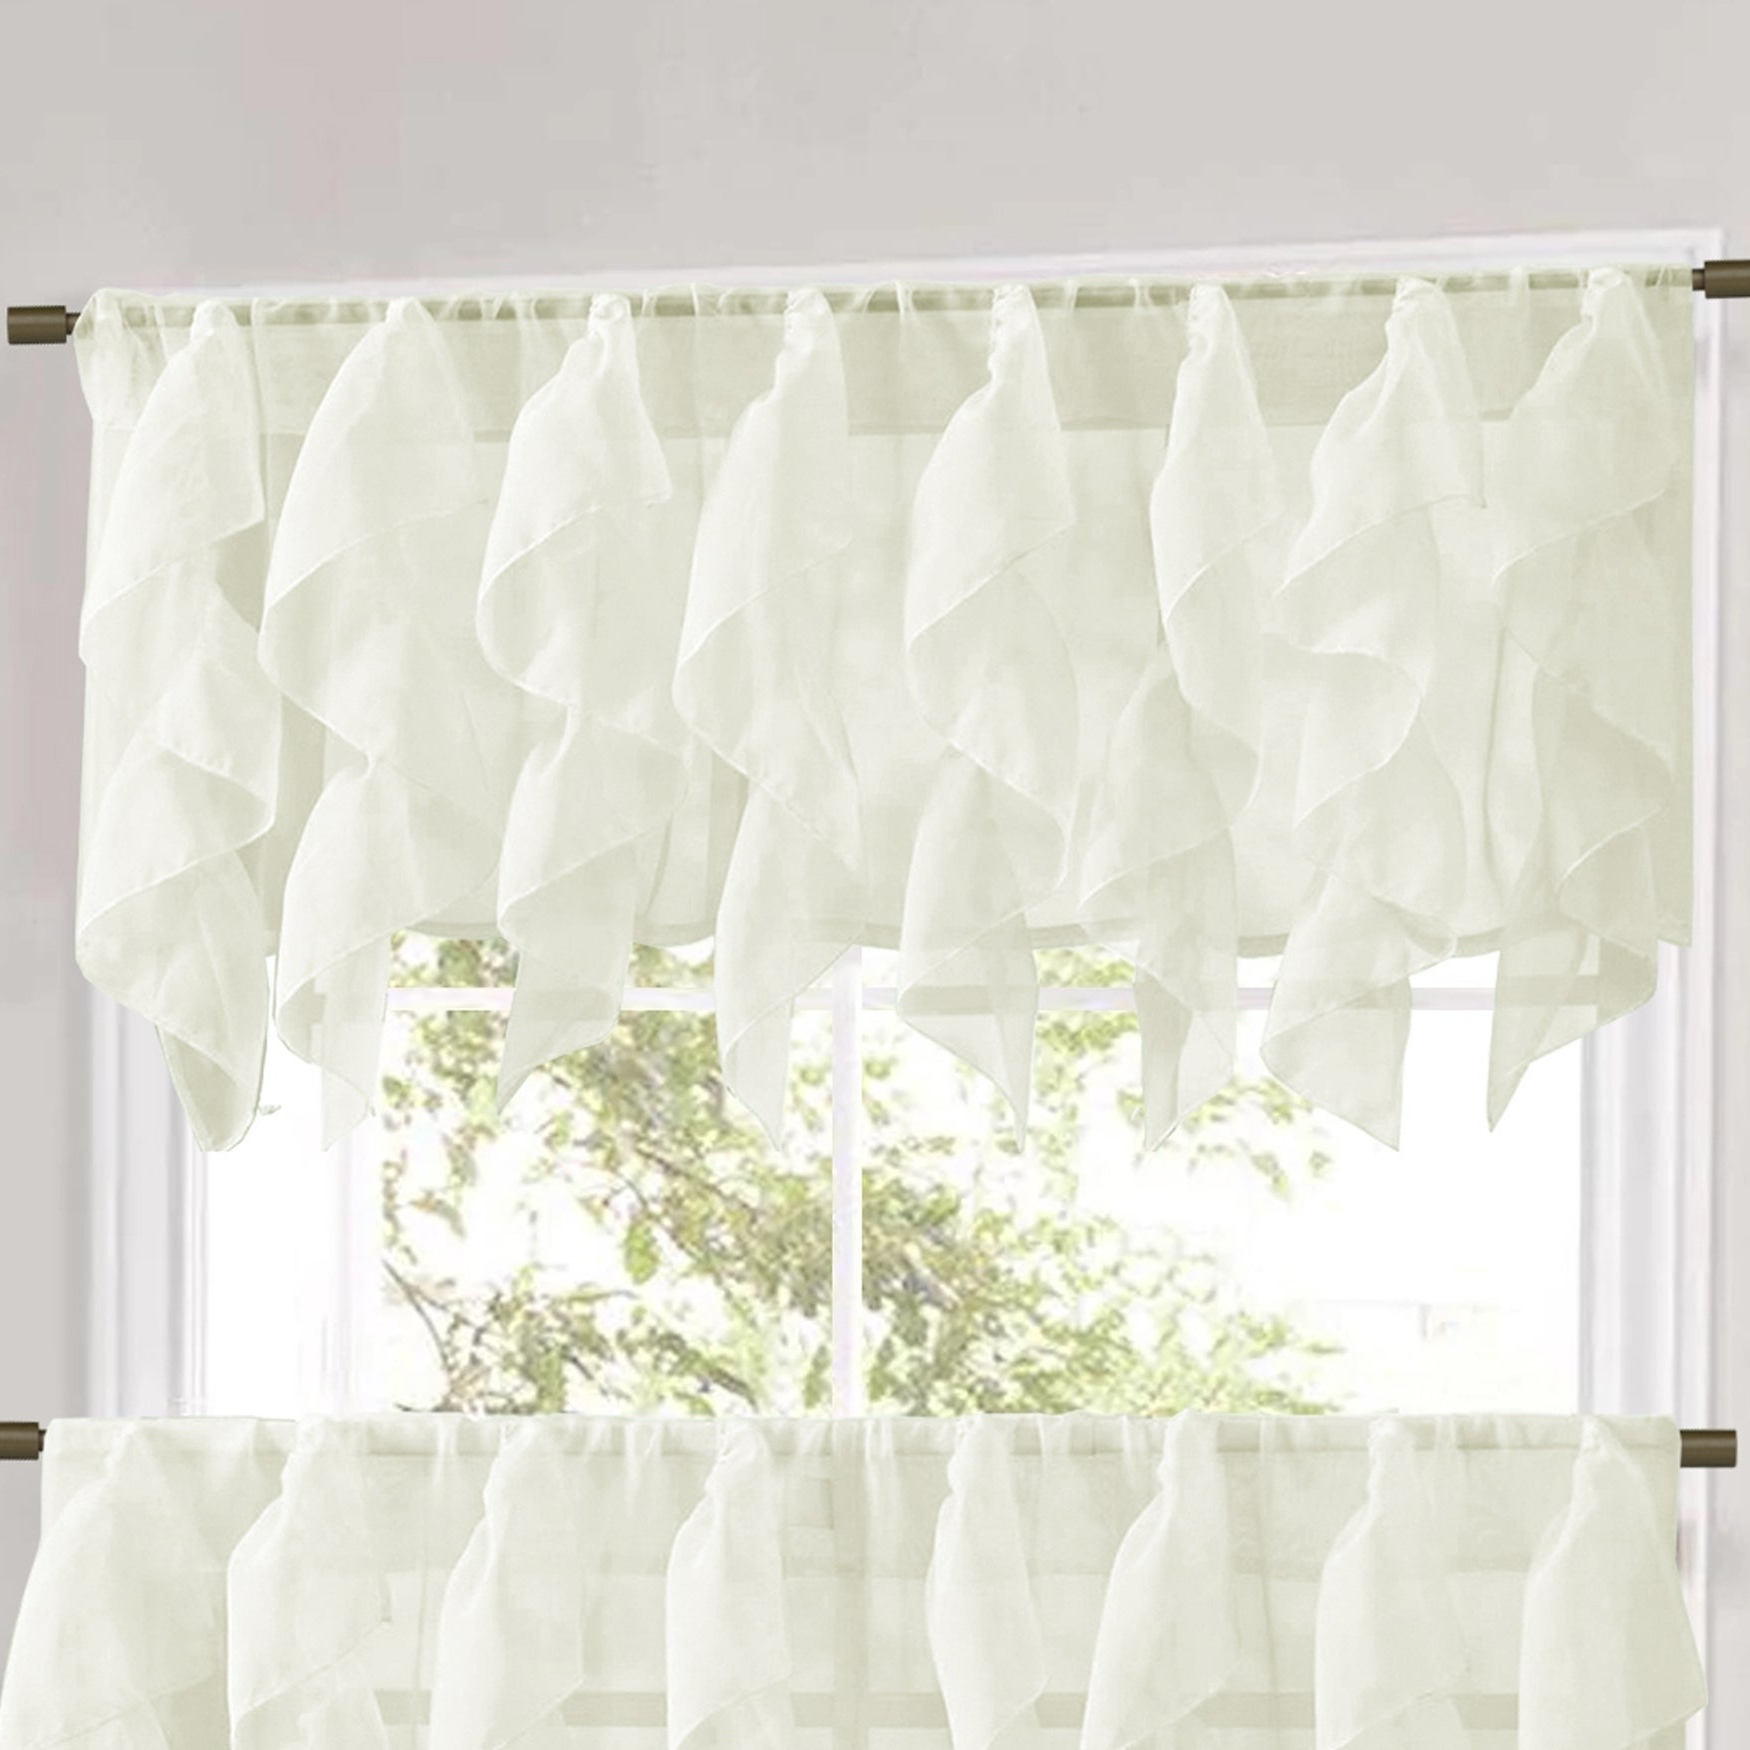 Newest Maize Vertical Ruffled Waterfall Valance And Curtain Tiers For Vertical Ruffled Waterfall Window Curtain Pieces Valance And Tiers Options (ivory) (View 2 of 20)